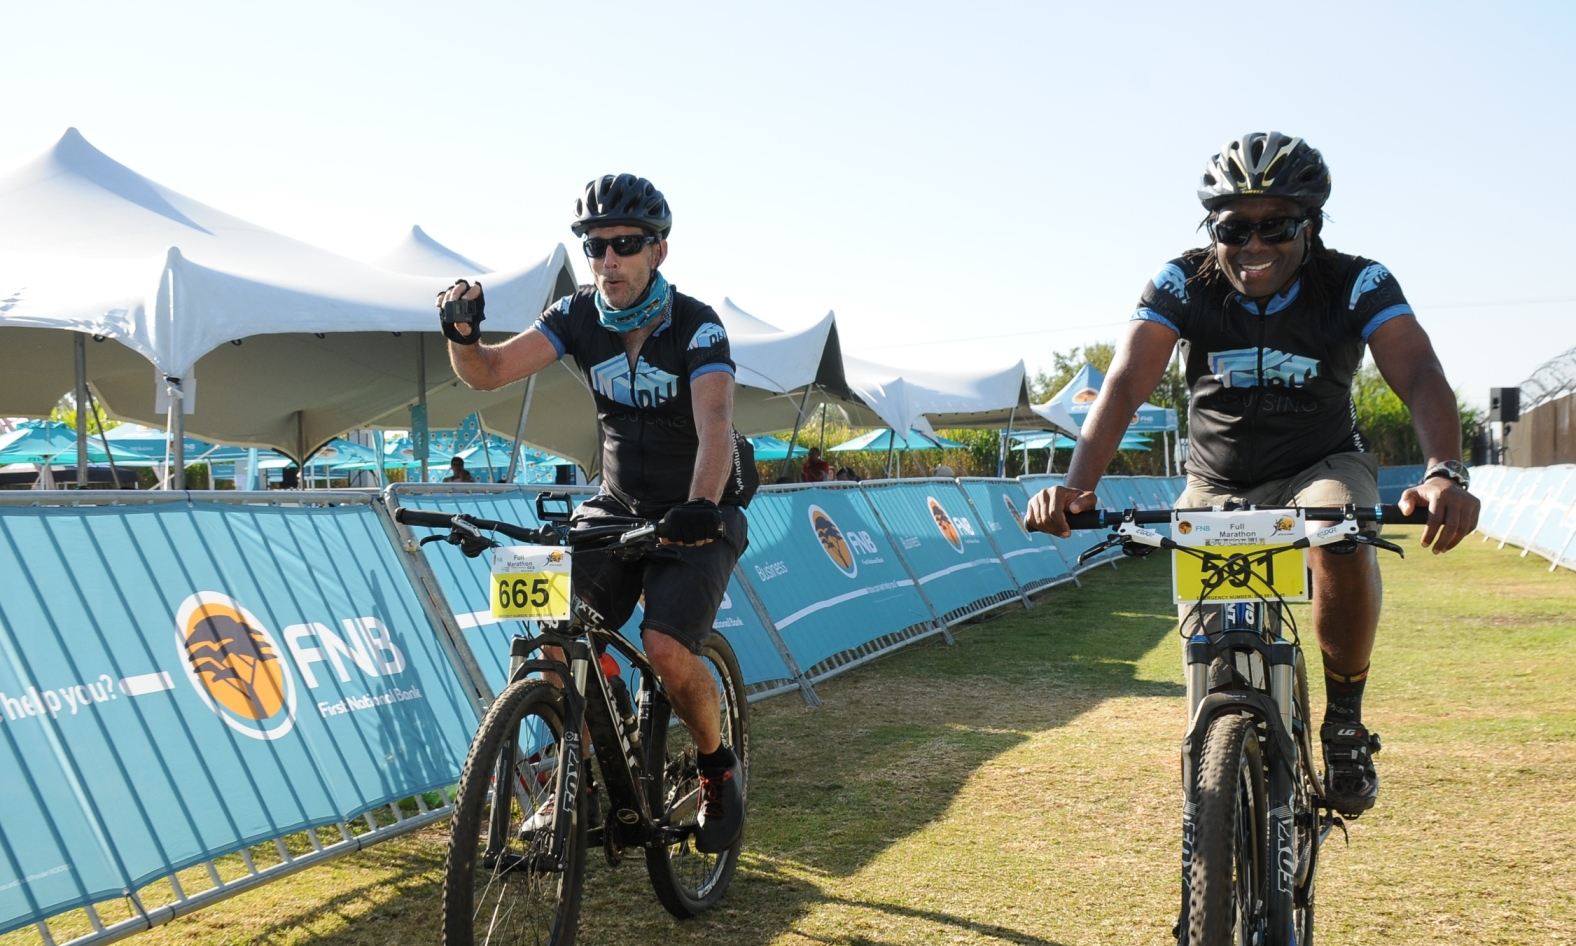 Friends ready to conquer the FNB Magalies Monster MTB Classic together